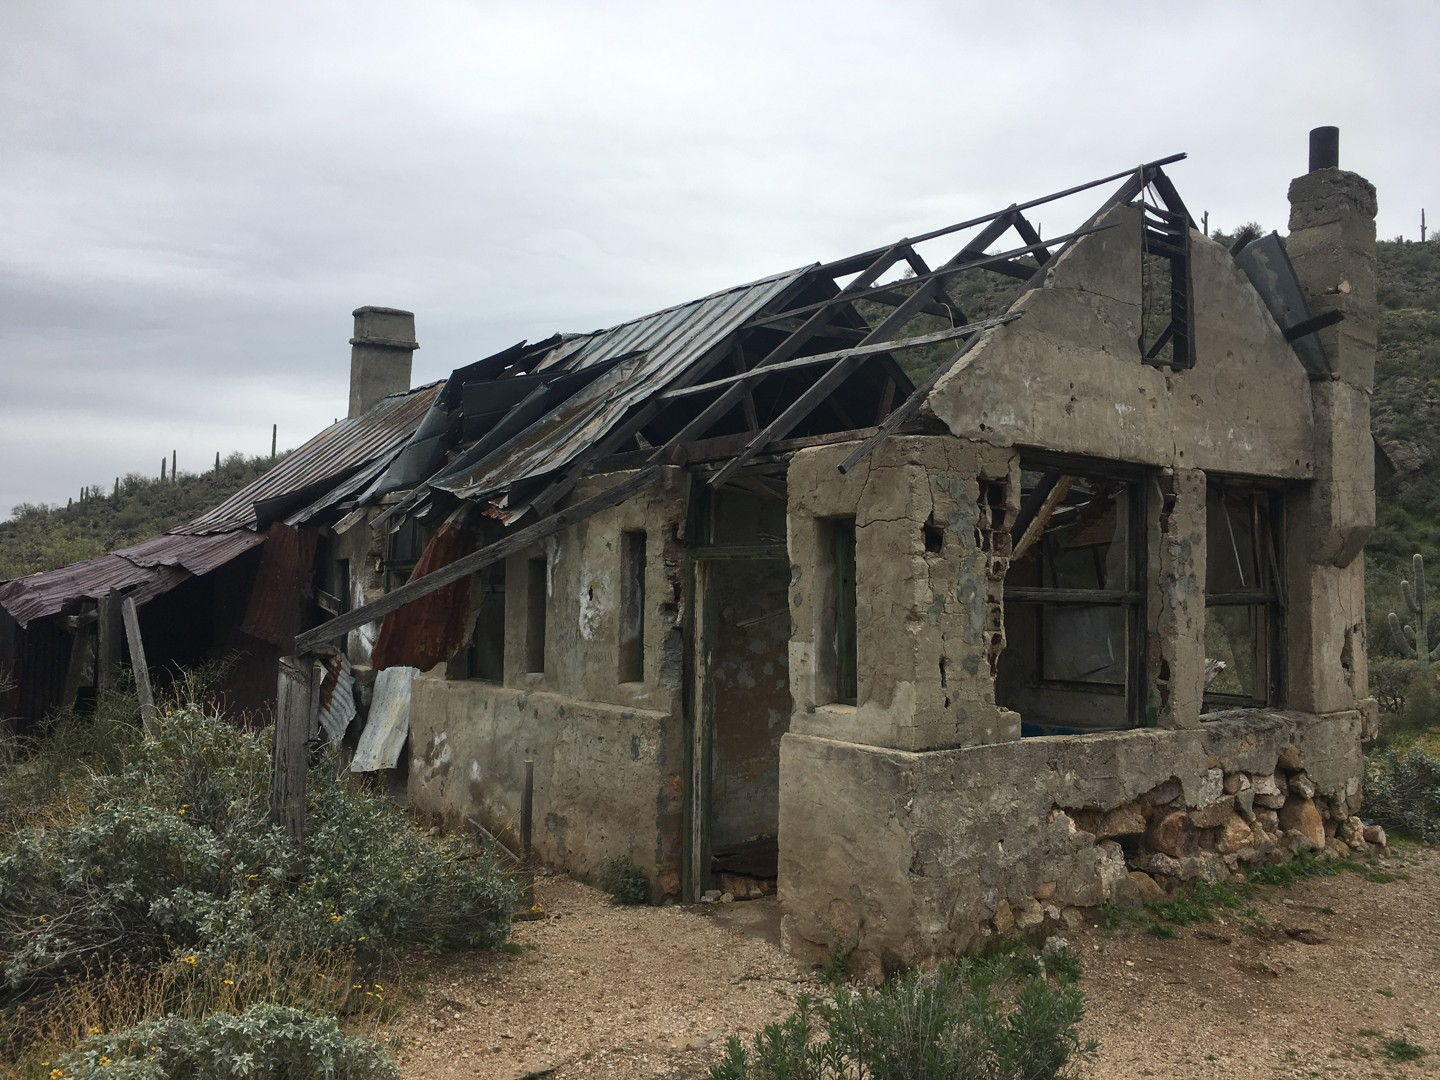 Trail Review: China Dam/Tule Homestead